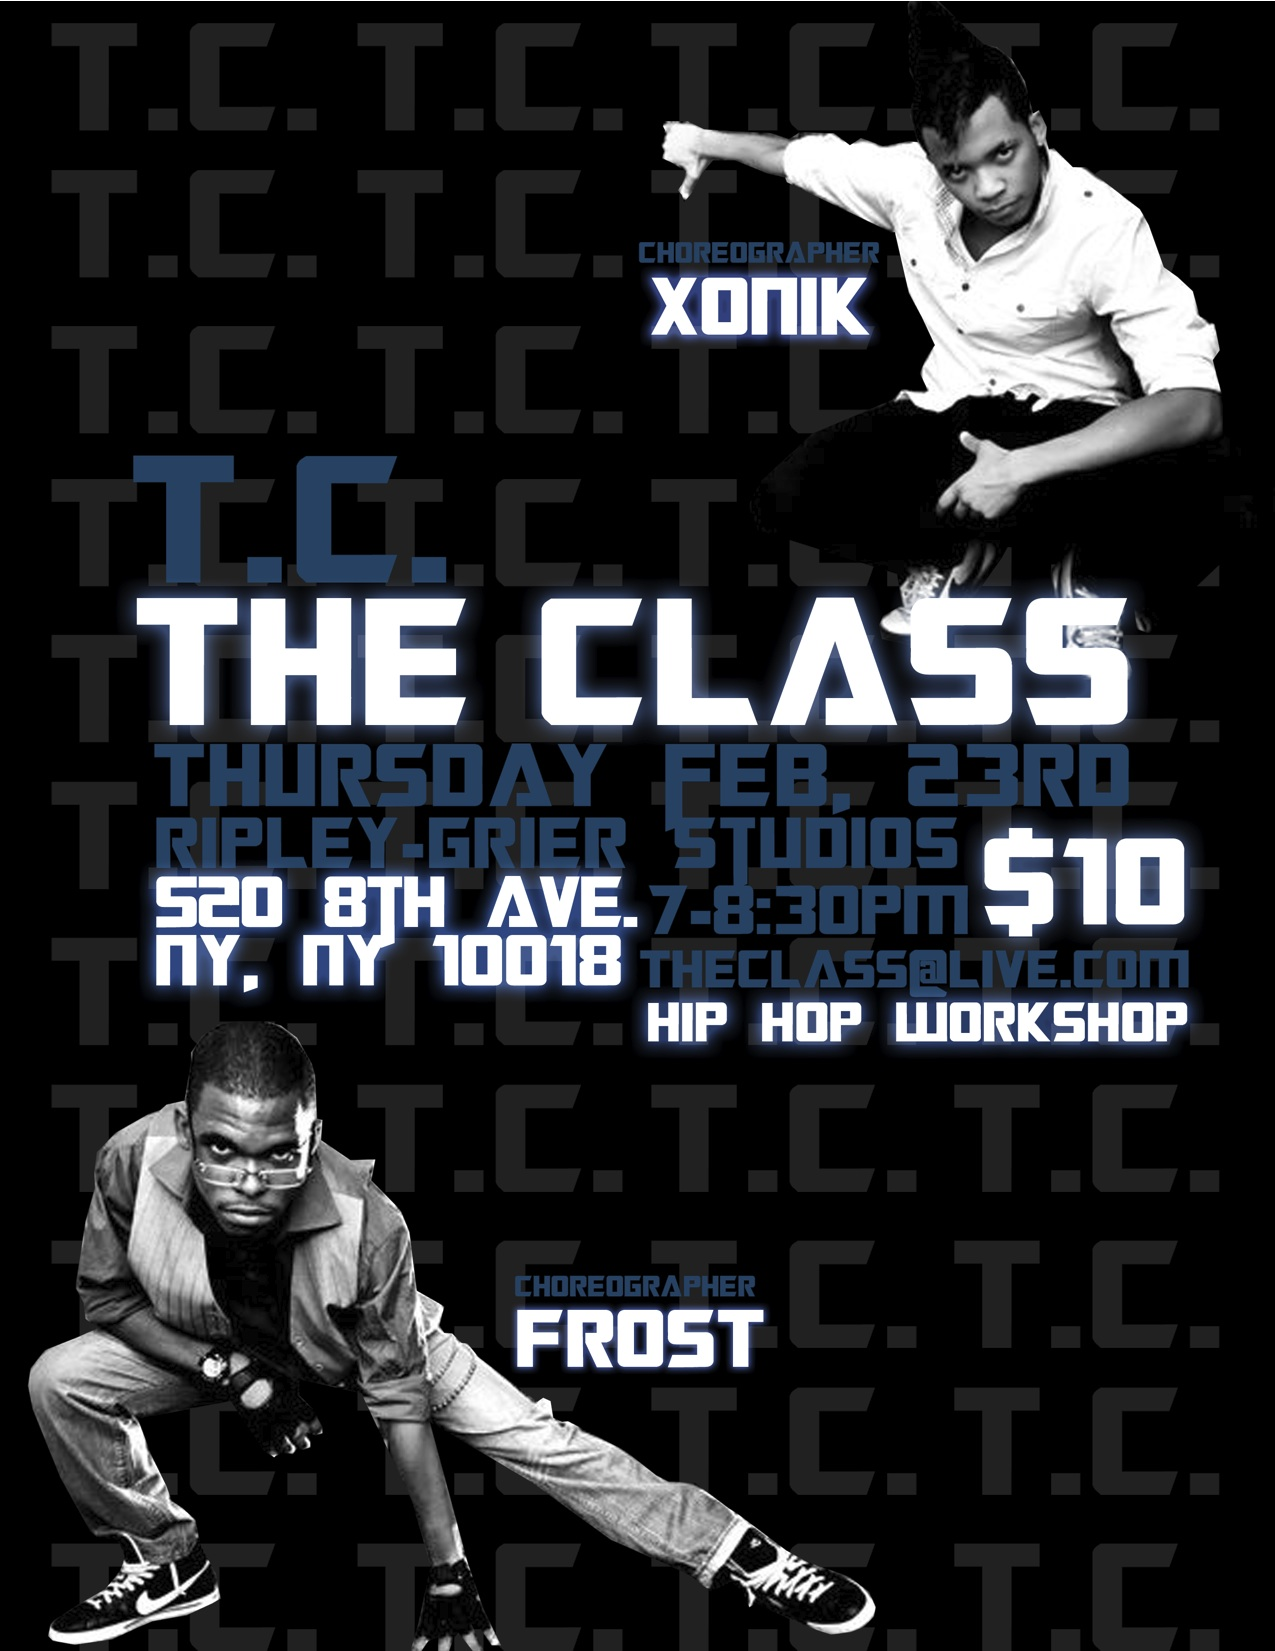 The Class Hip Hop Salsa Workshop NYC